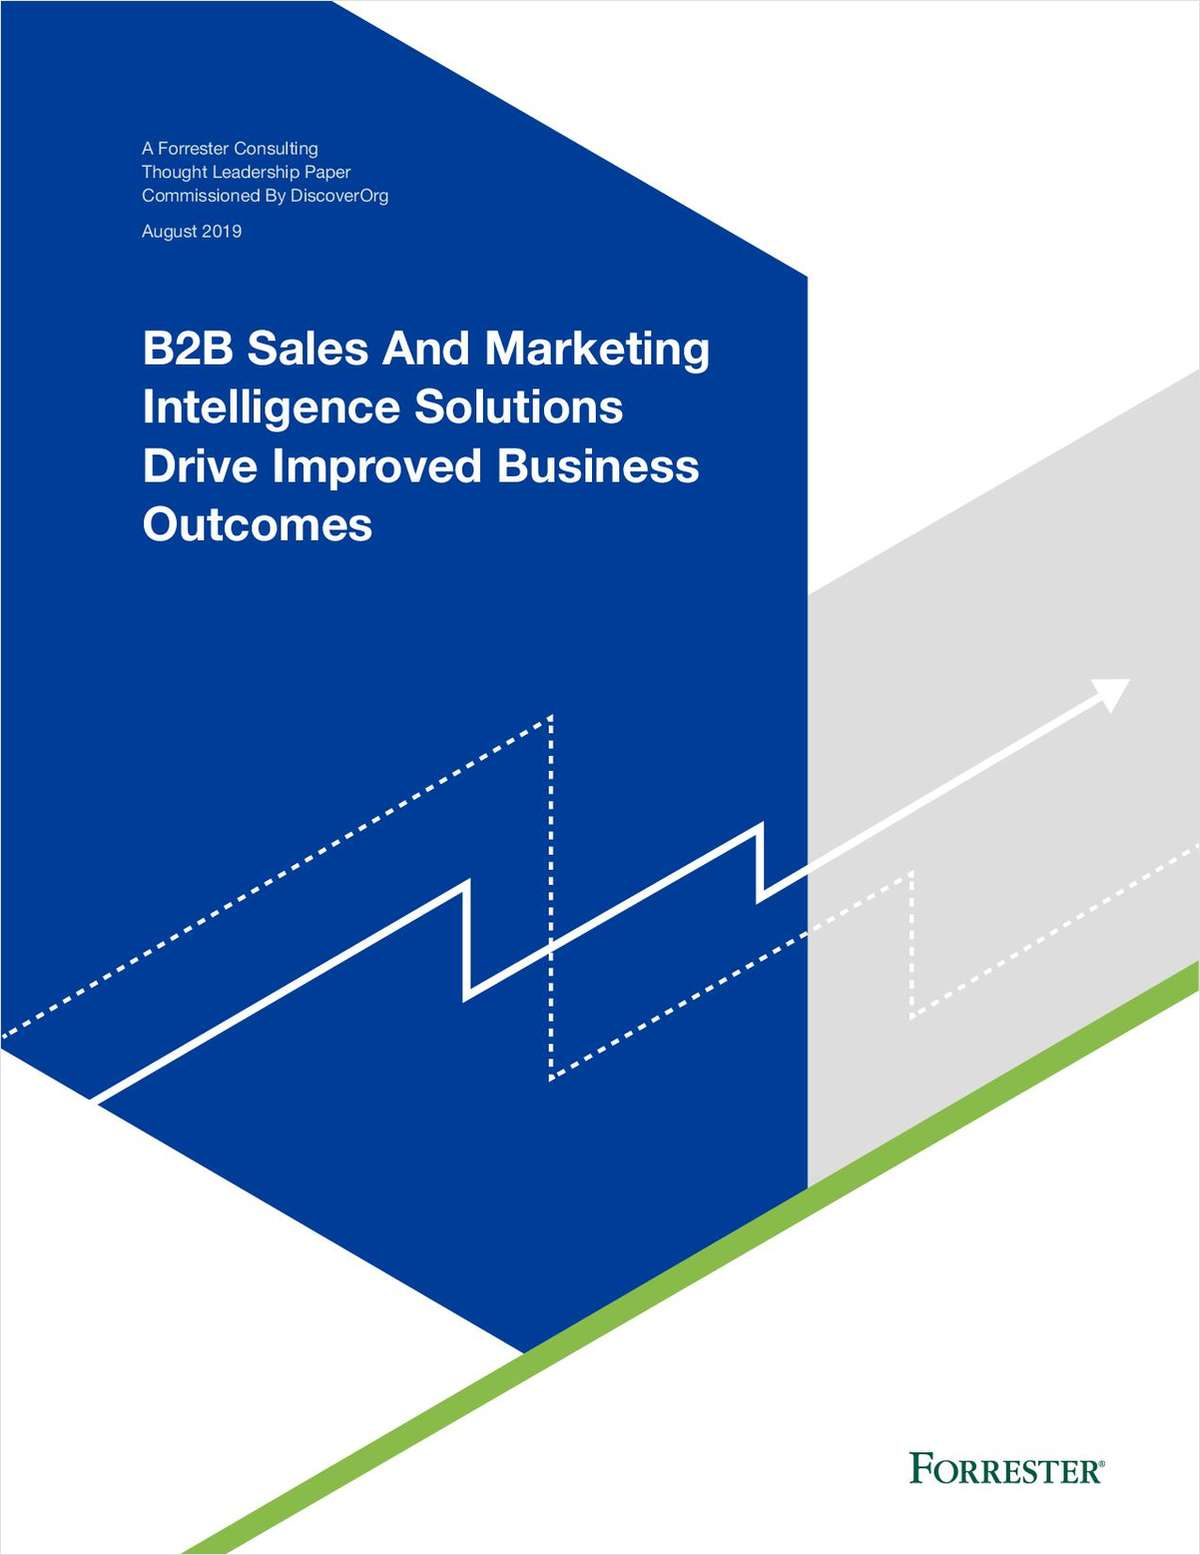 Forrester Research Report: How Sales and Marketing Intelligence Drive Improved Business Outcomes